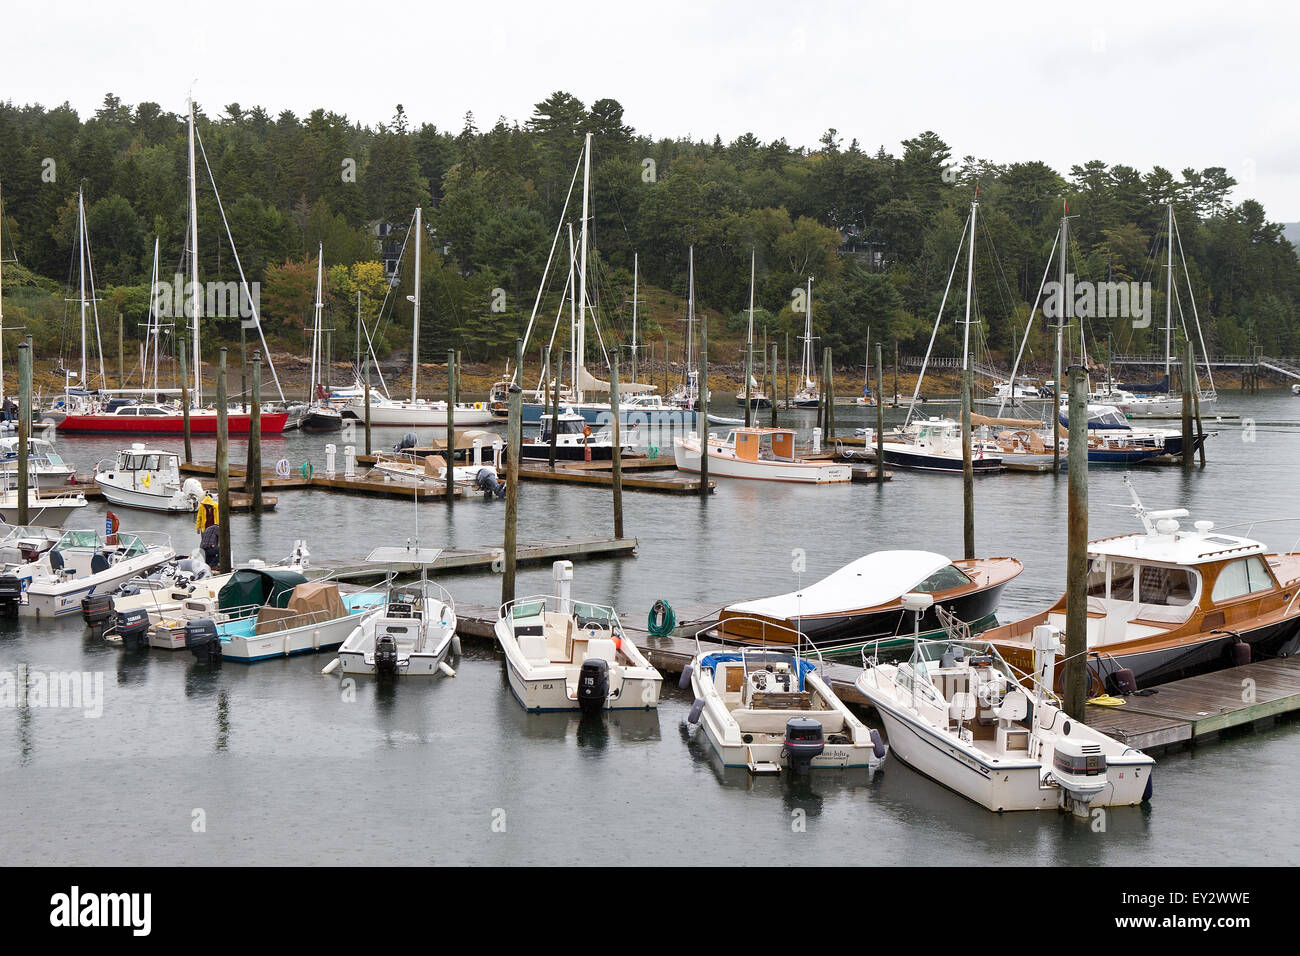 Boats in a marina Northeast Harbor, near Acadia National Park, Maine, United States of America - Stock Image